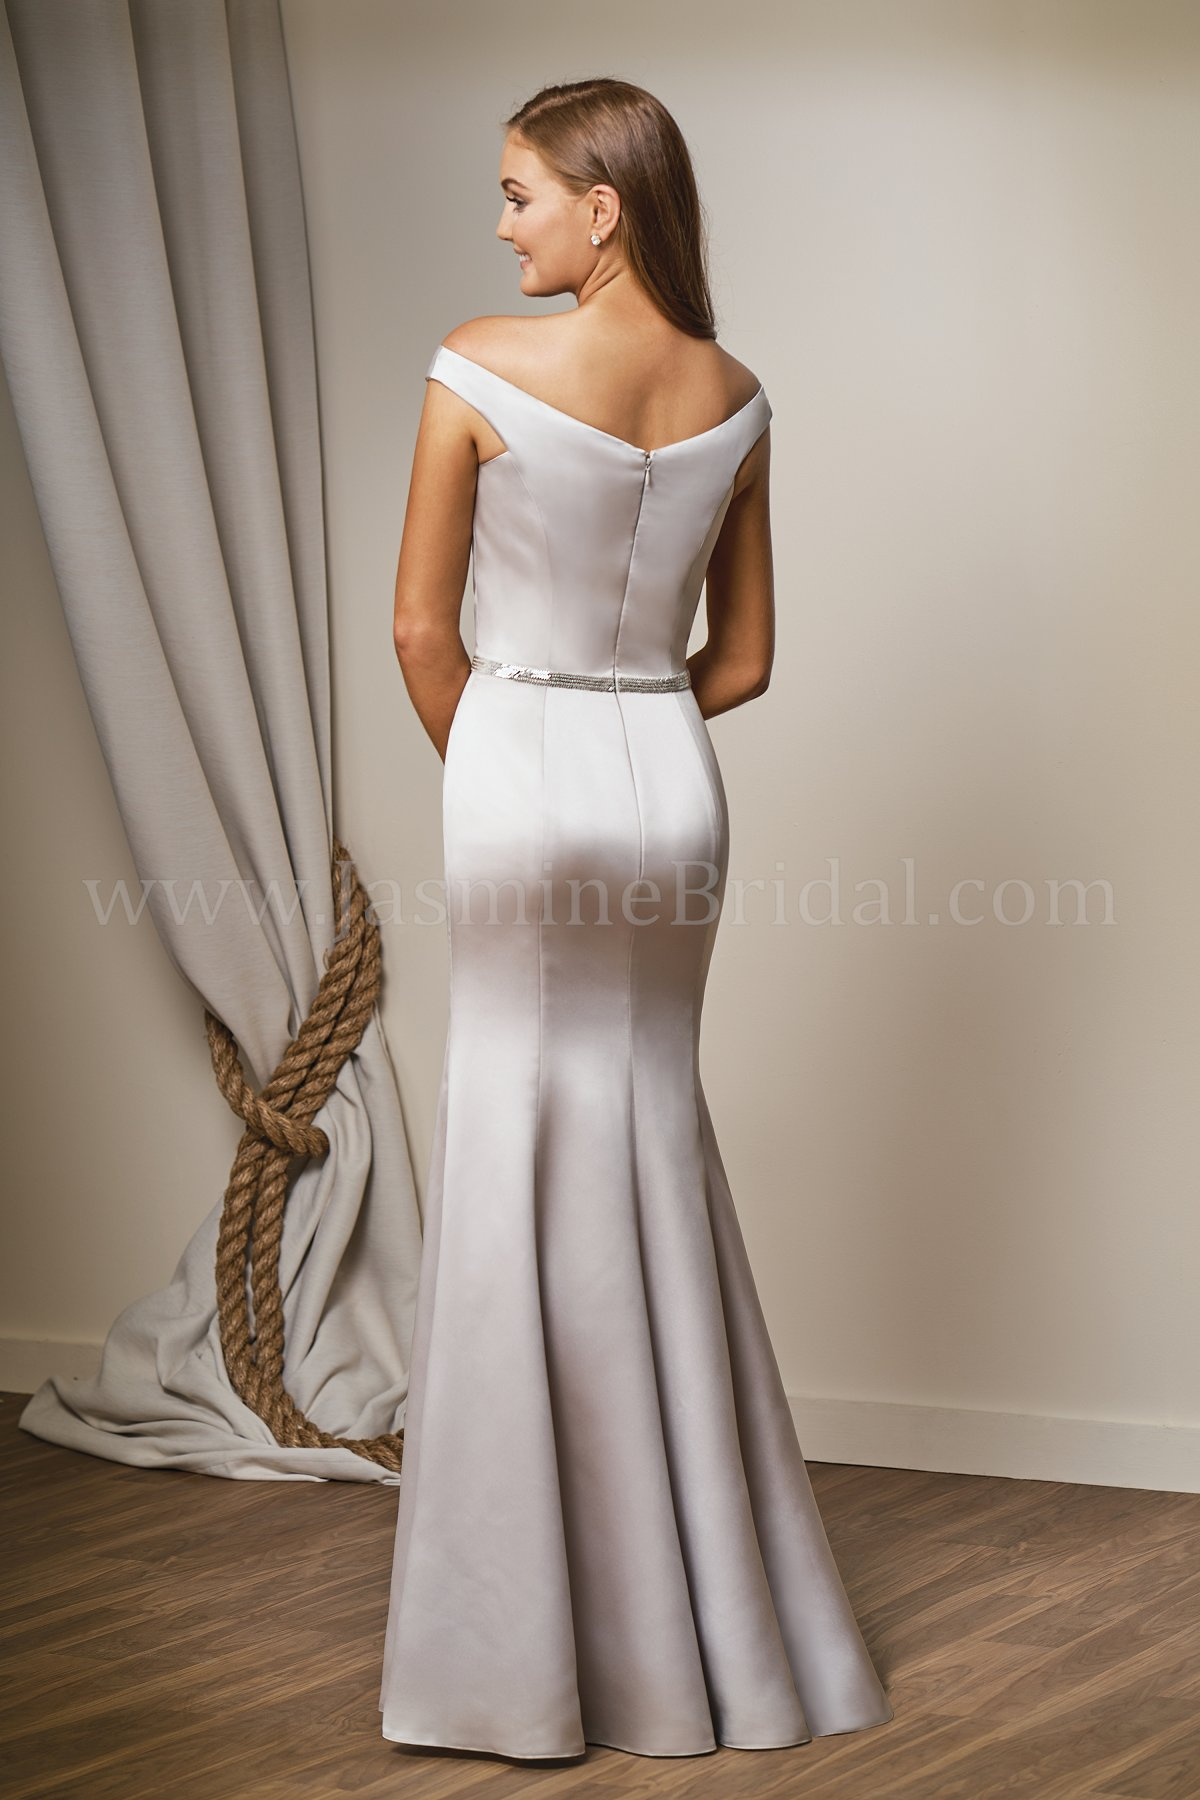 bridesmaid-dresses-L204011-B